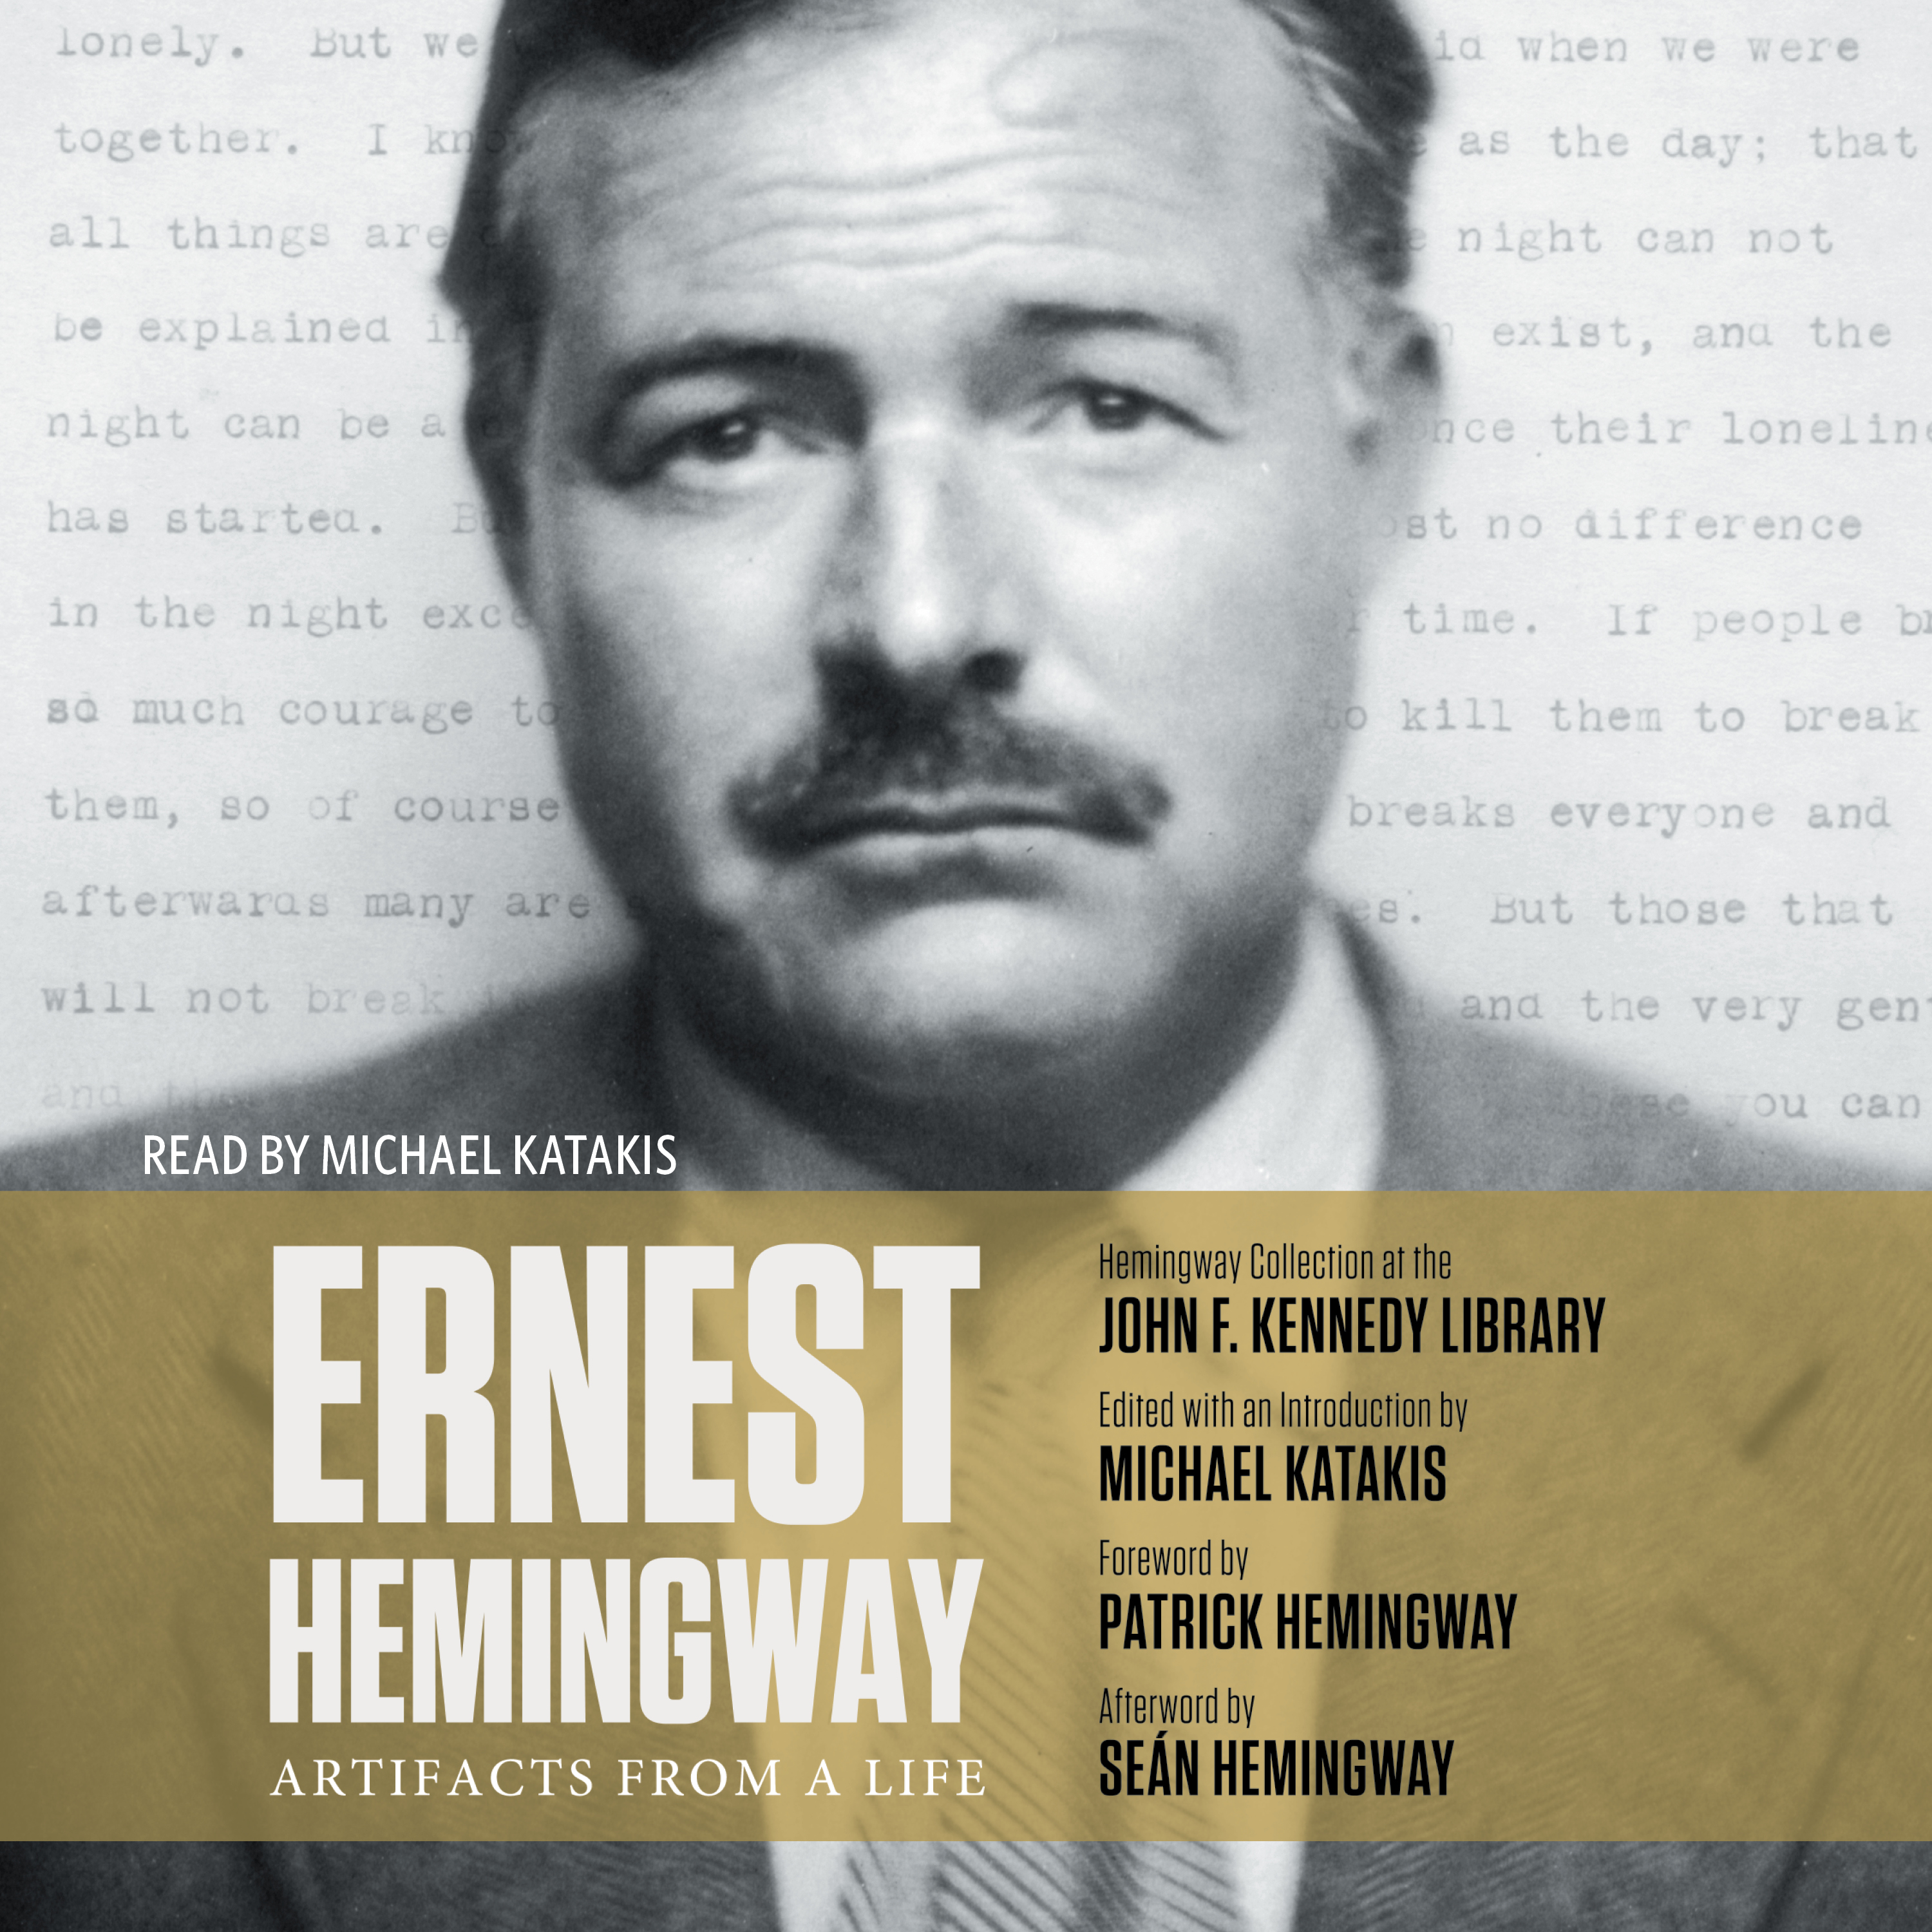 Ernest hemingway artifacts from a life 9781508257837 hr